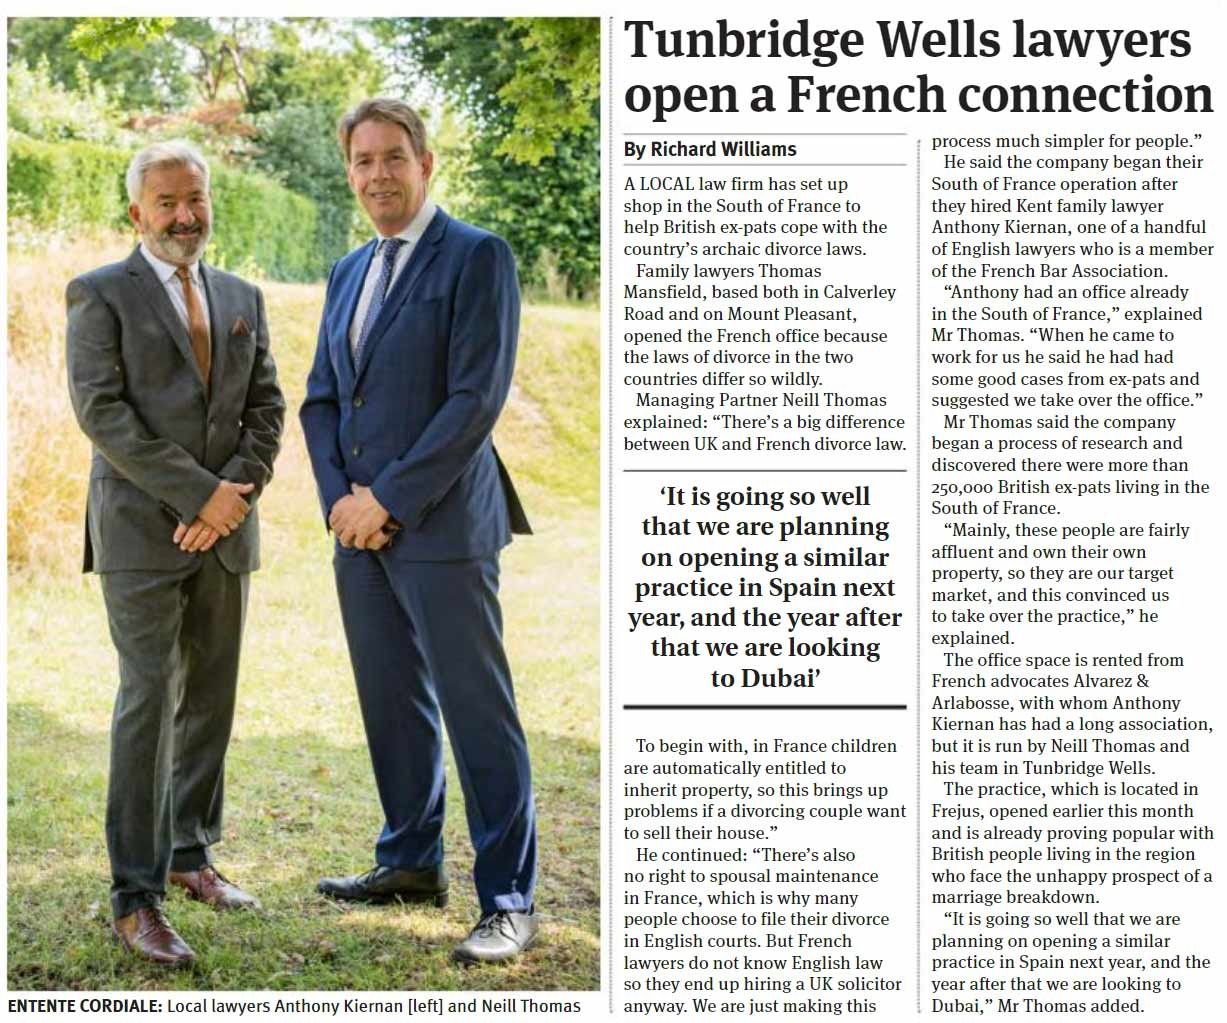 Tubridge Wells Lawyers Open A French Connection Times Of Tunbridge Wells 24th July 2019